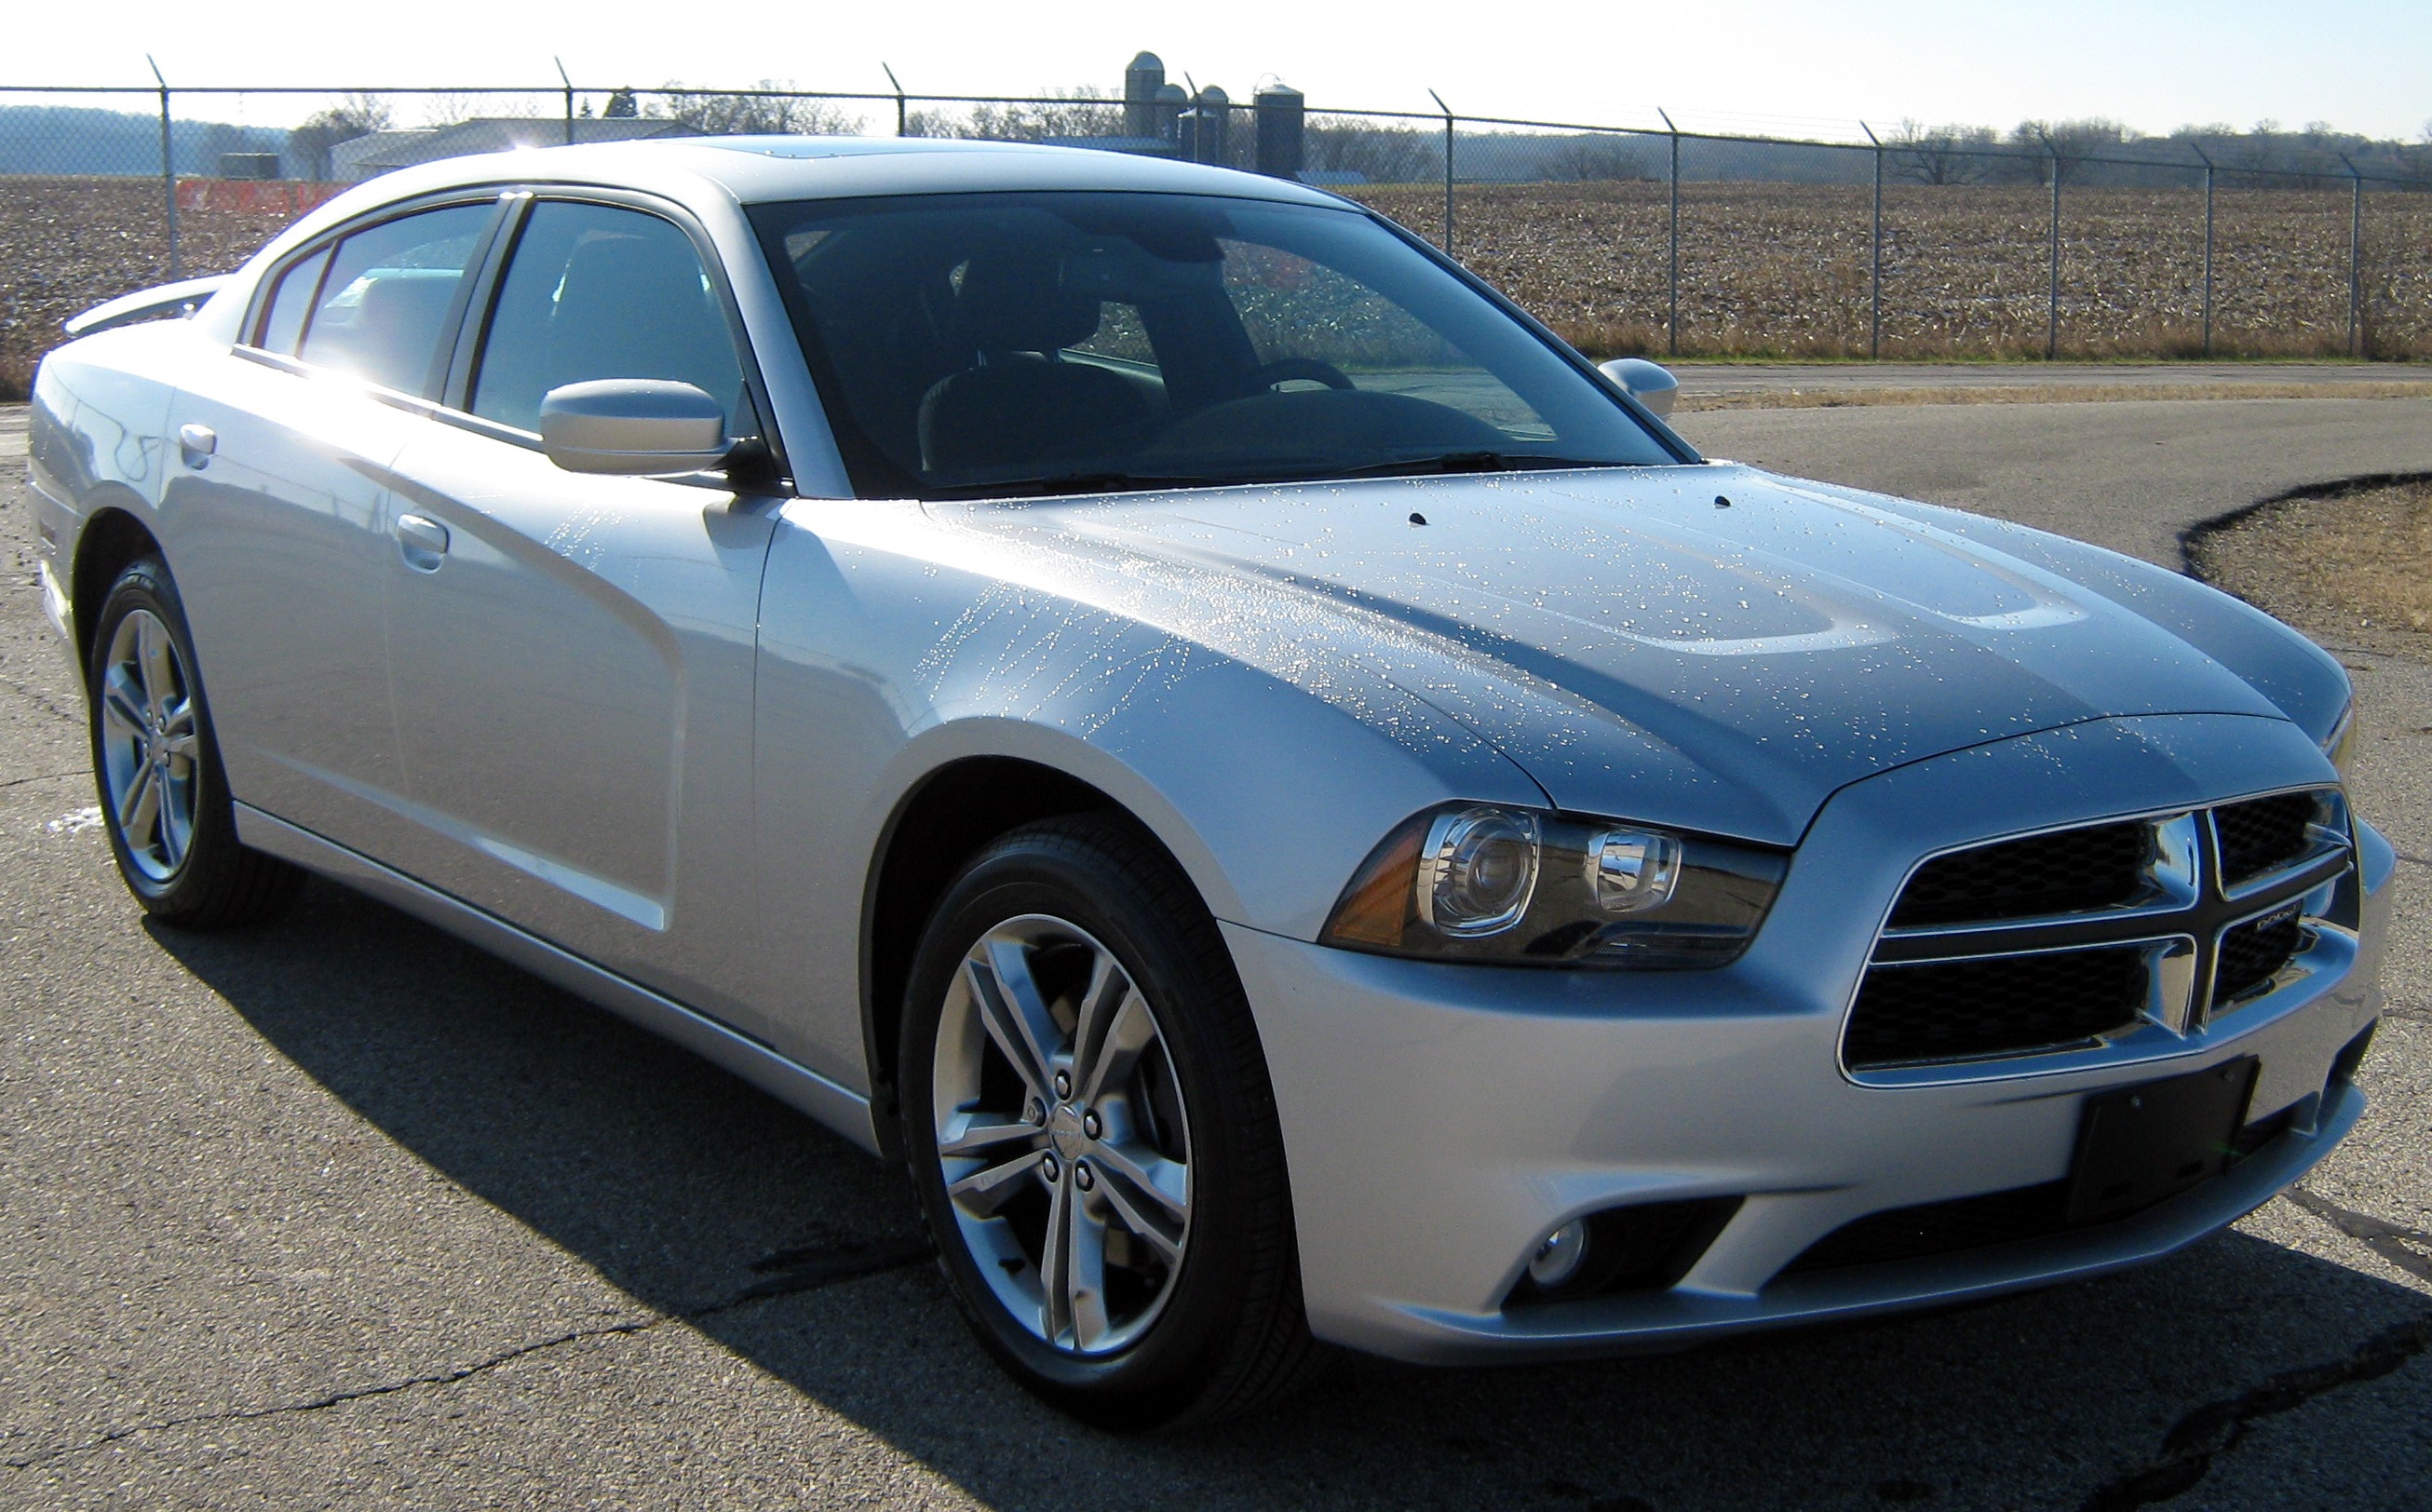 File 2012 Dodge Charger Sxt Nhtsa Jpg Wikimedia Commons